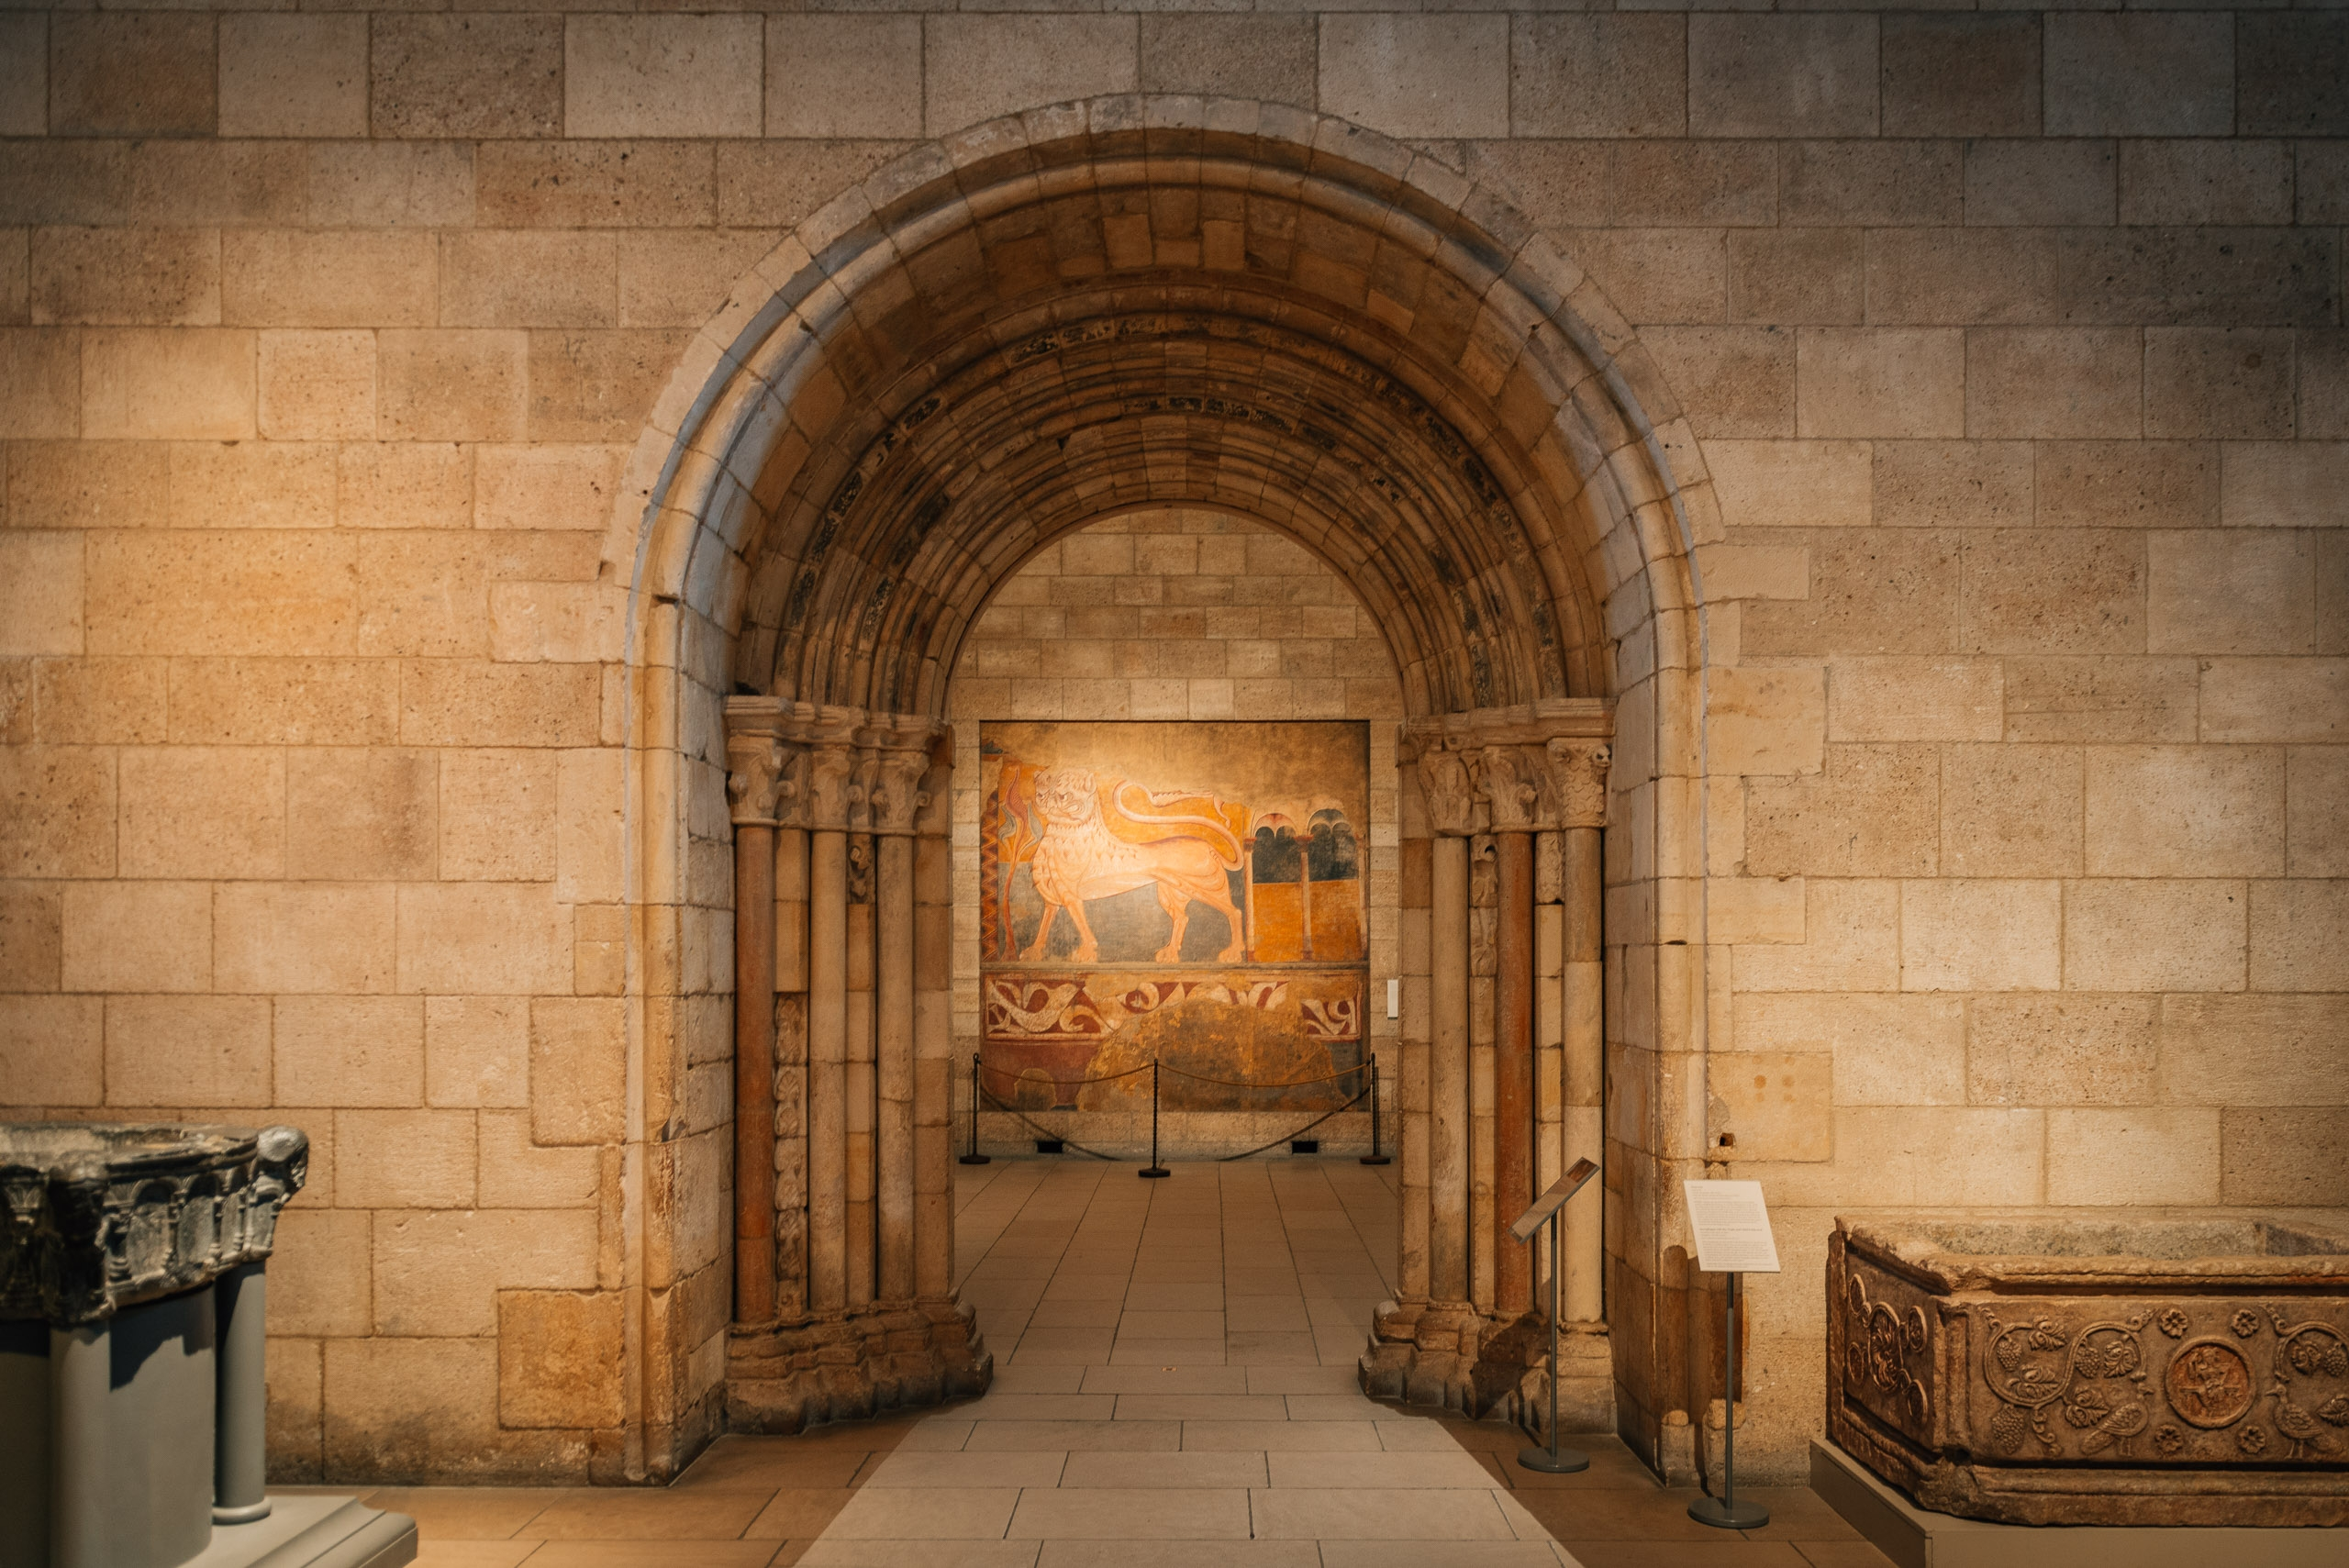 A Stone Arched Entry